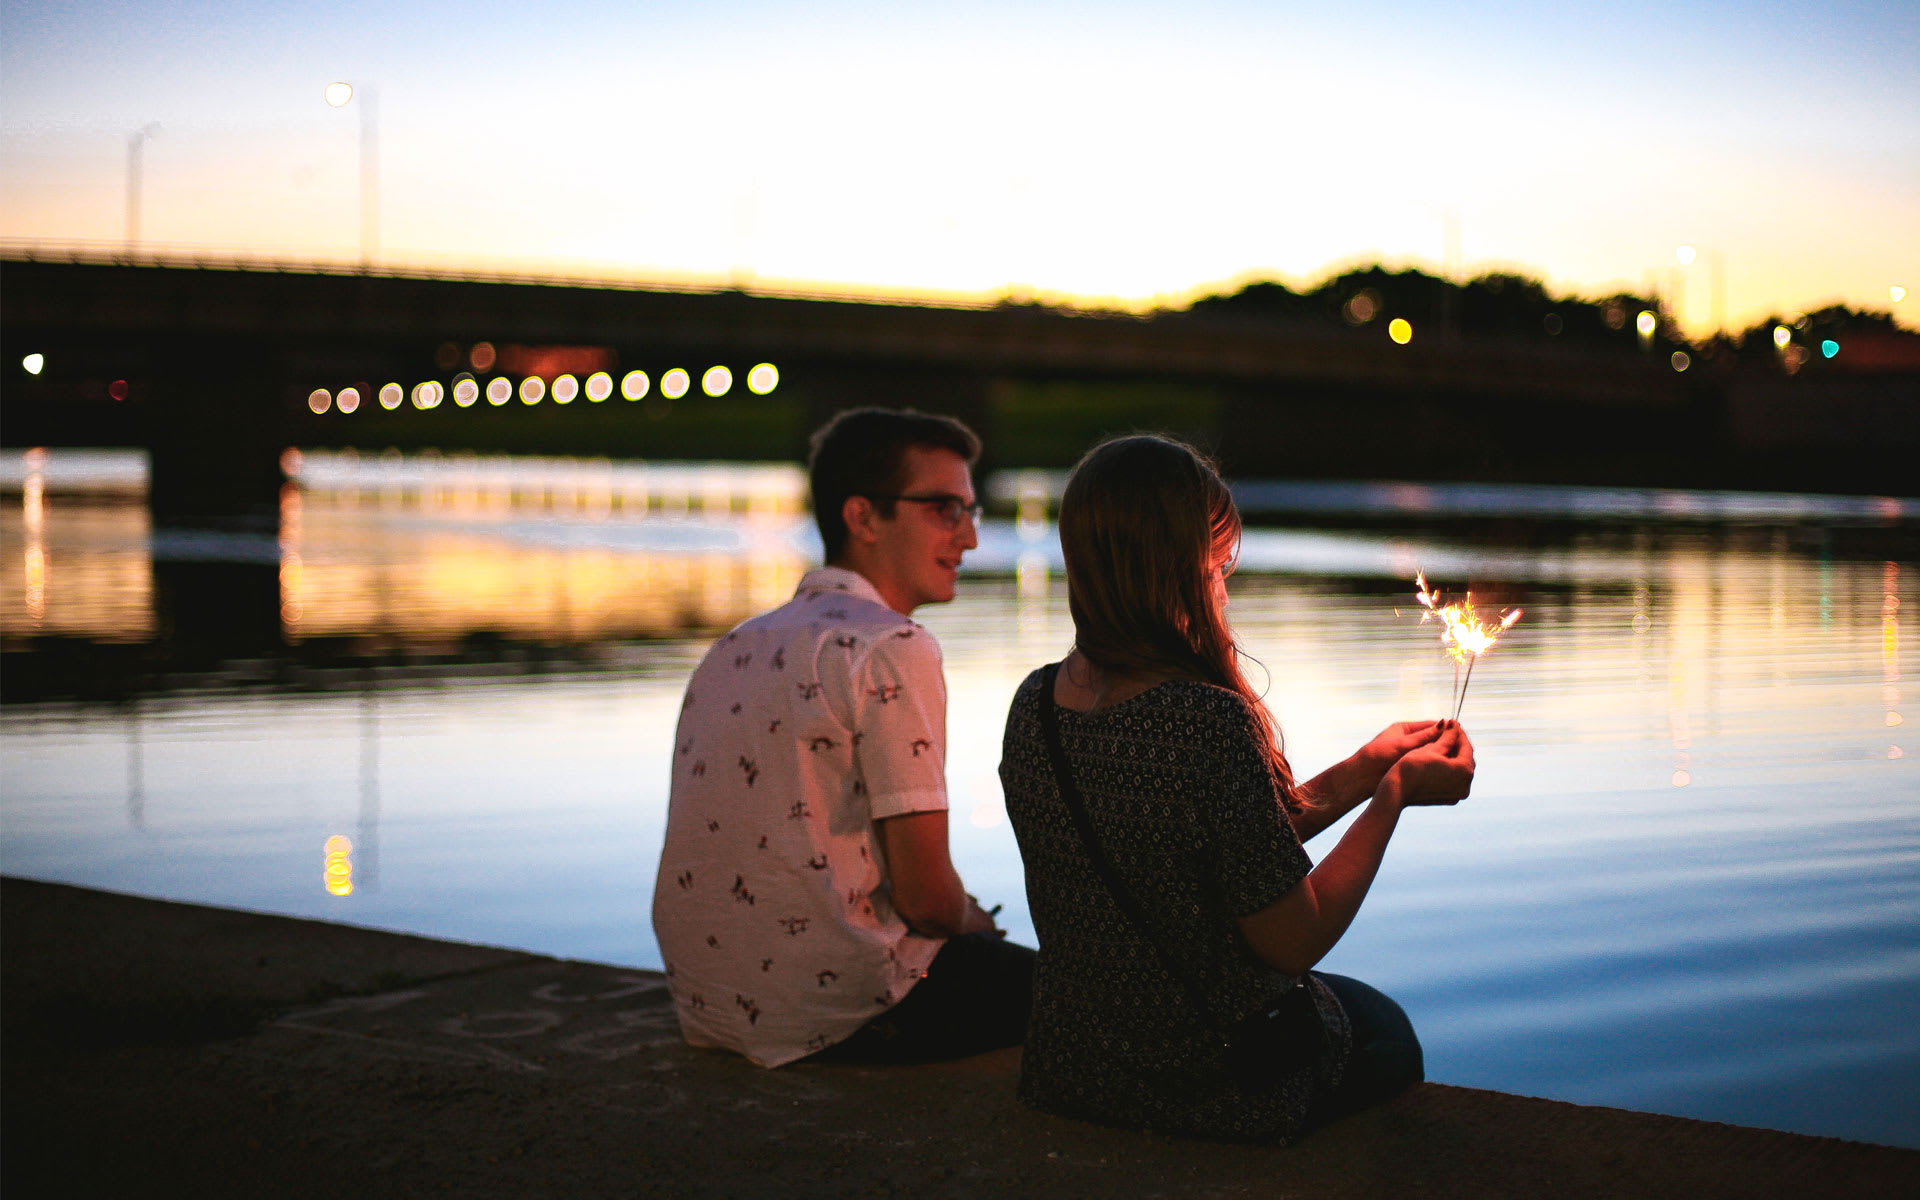 Save Your Money With These Creative 50 Cheap Date Ideas